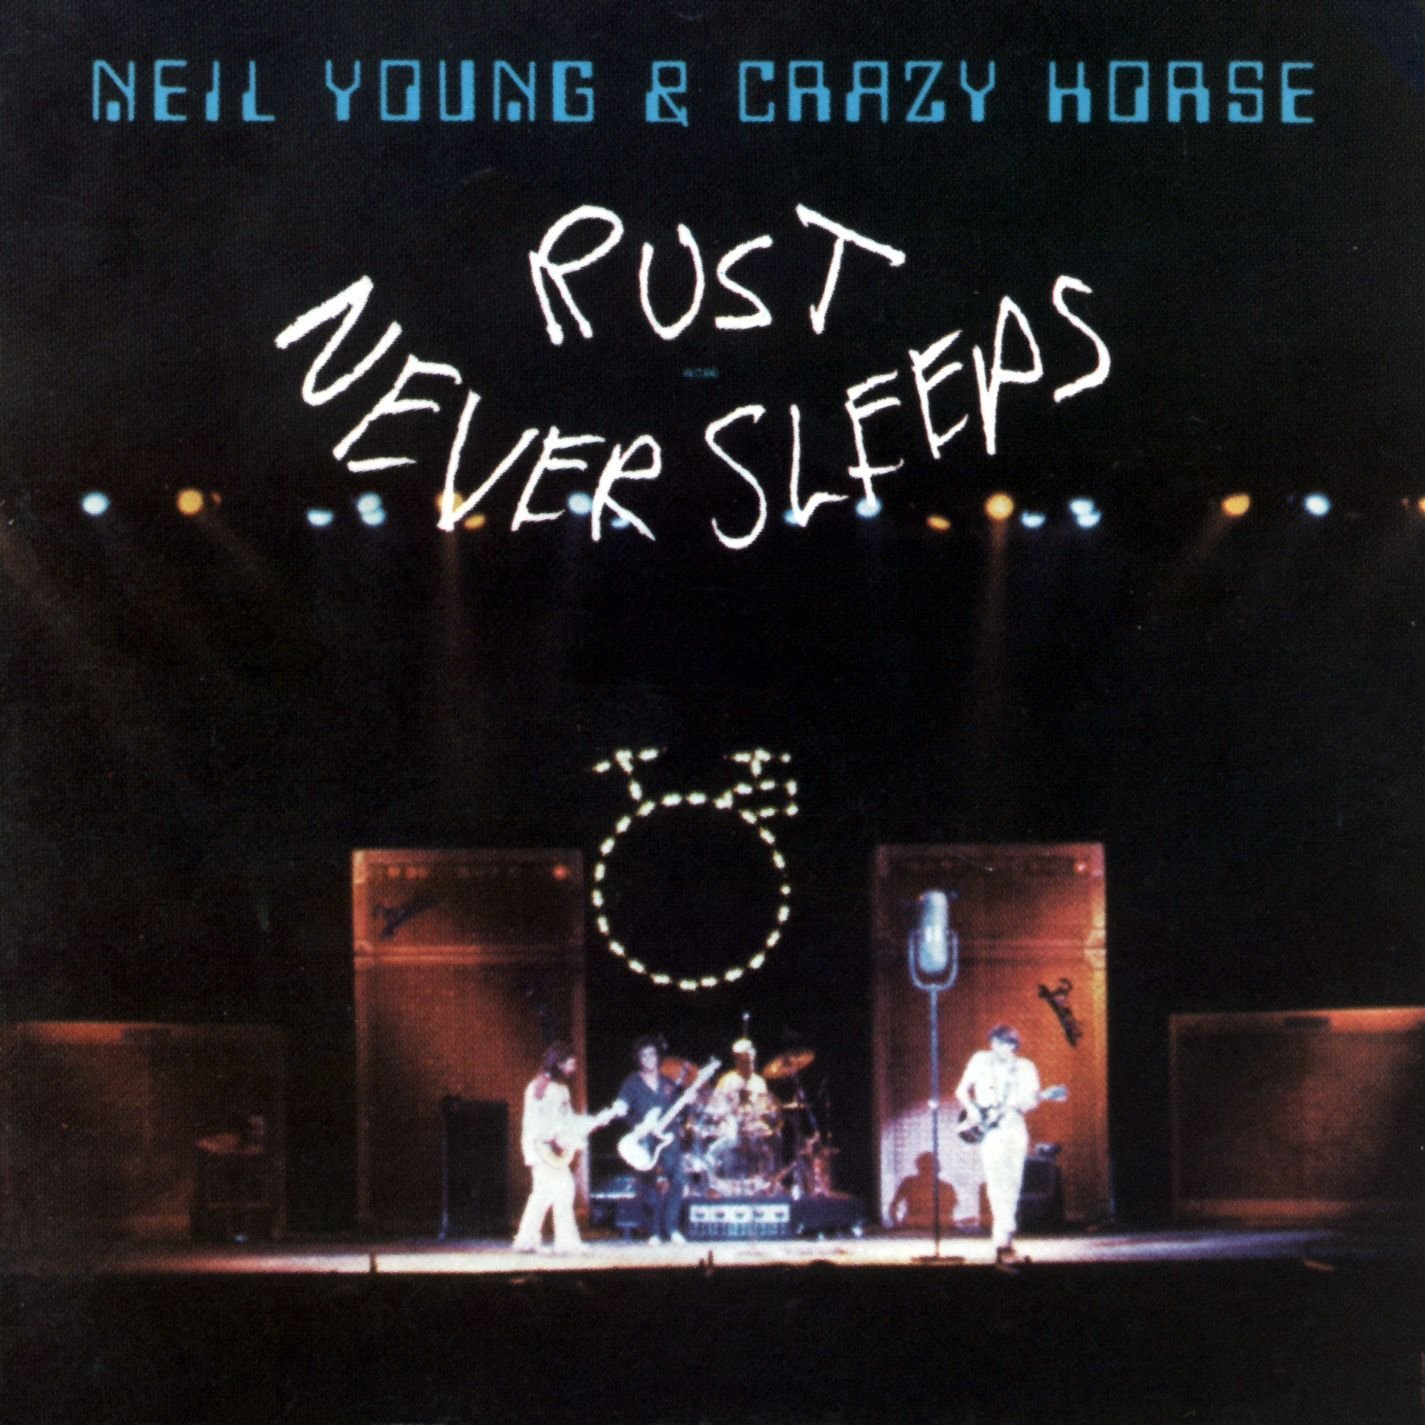 rust never sleeps The Top 10 Grunge Albums of All Time